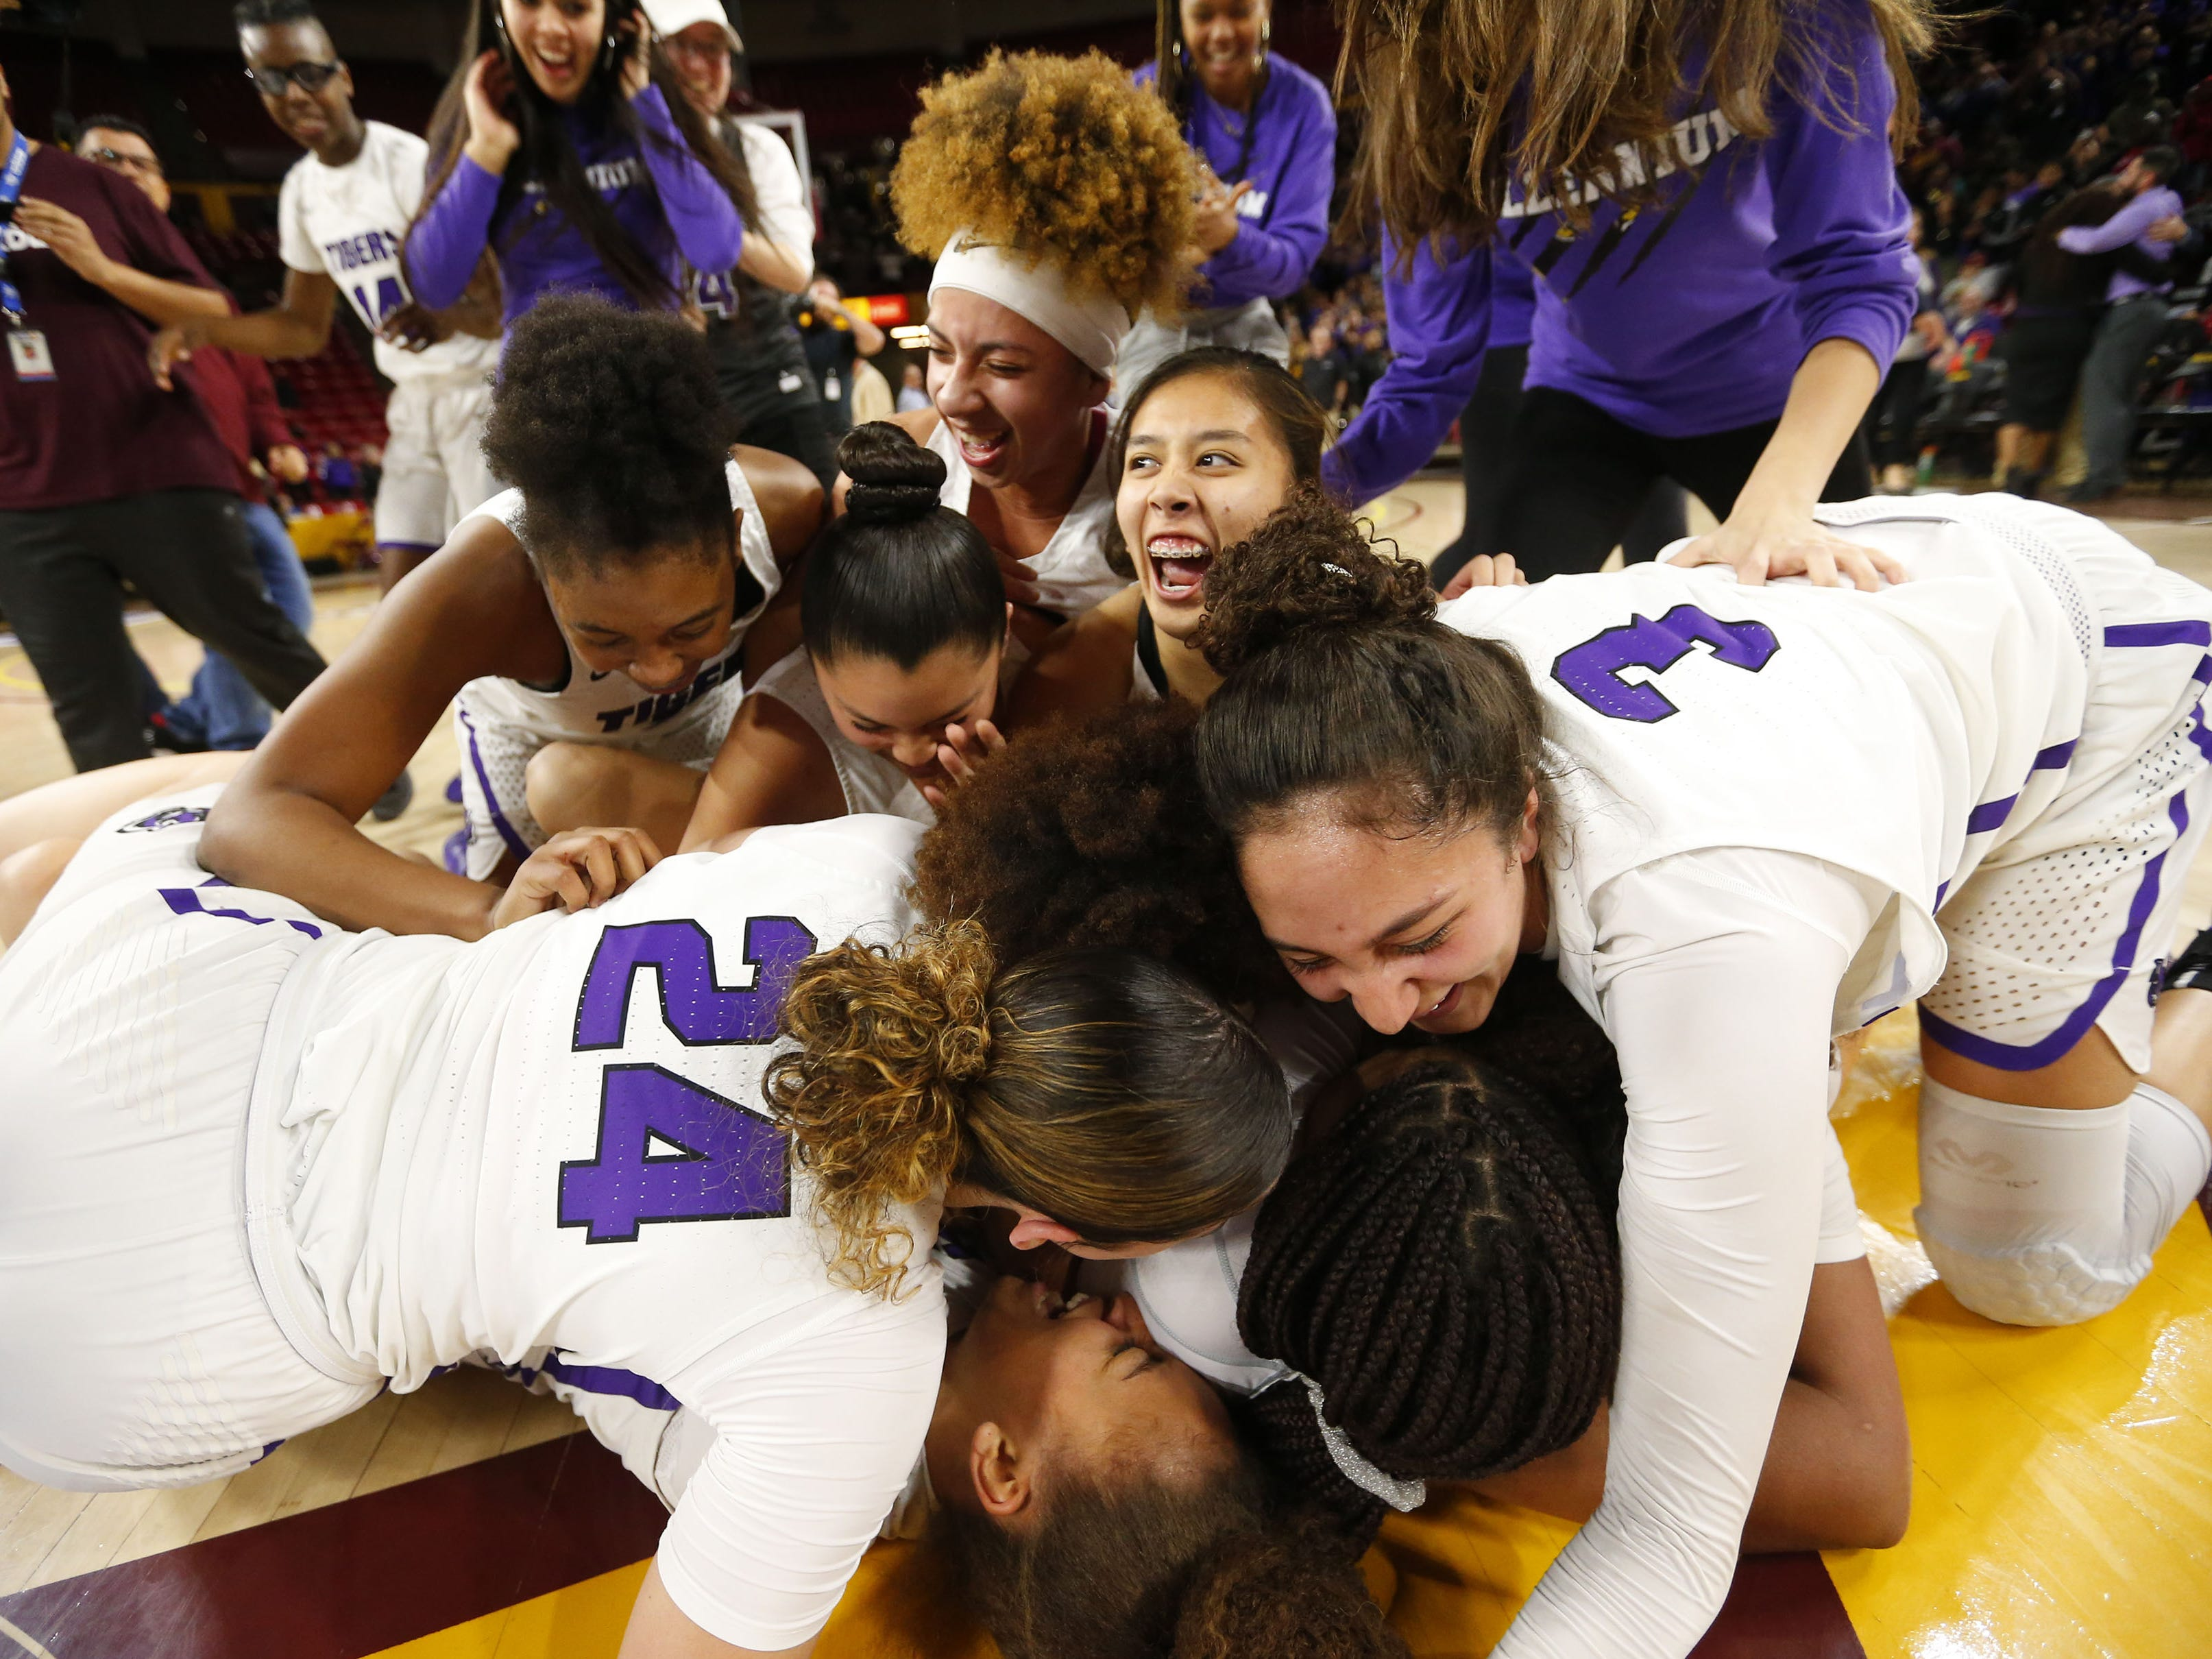 Millennium players celebrate after winning the Girls State 5A Championship game against Gilbert in Tempe, Ariz. Feb. 25, 2019.